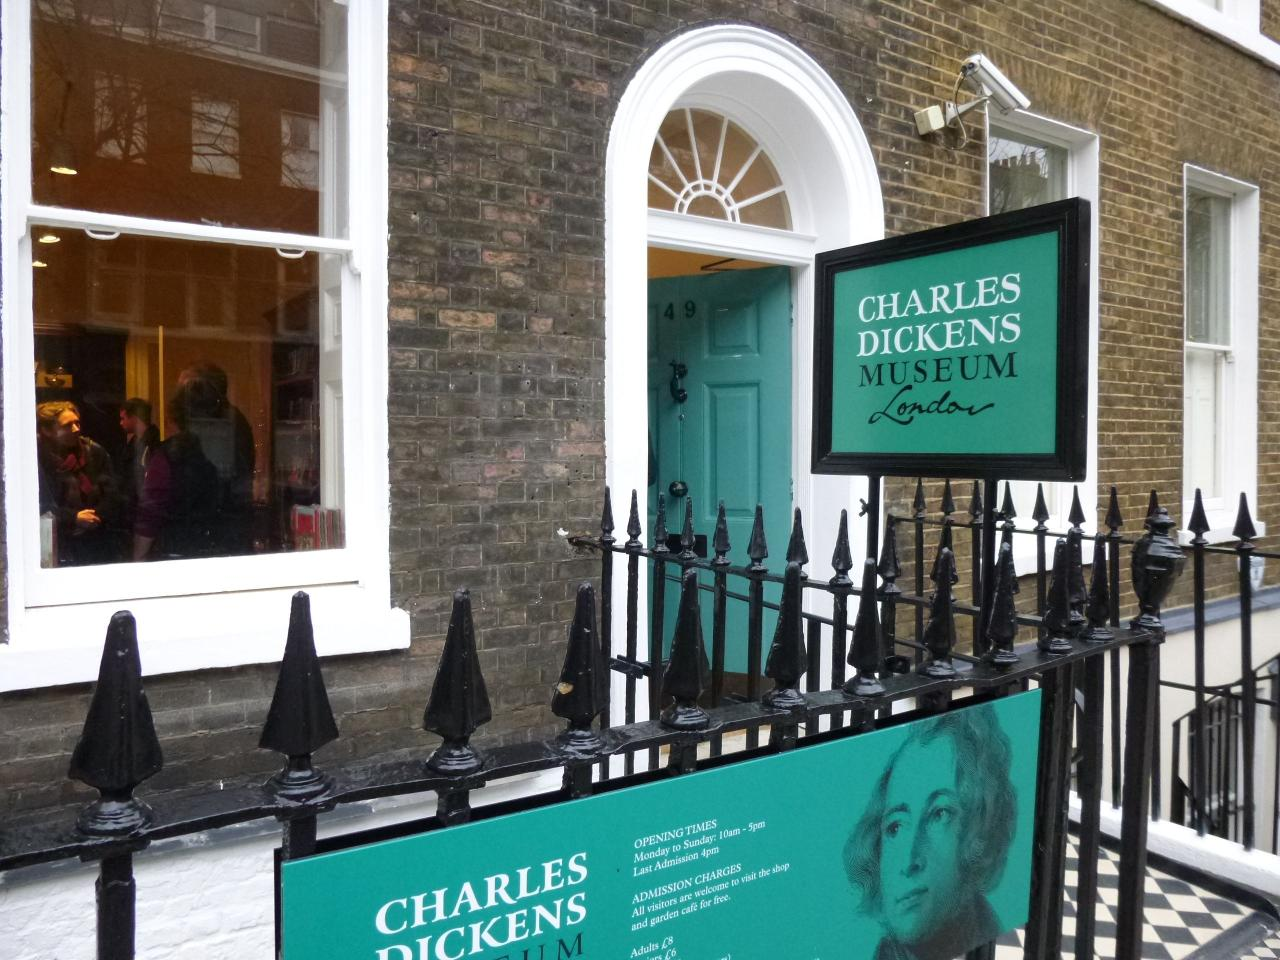 Charles Dickens Museum Entrance Ticket